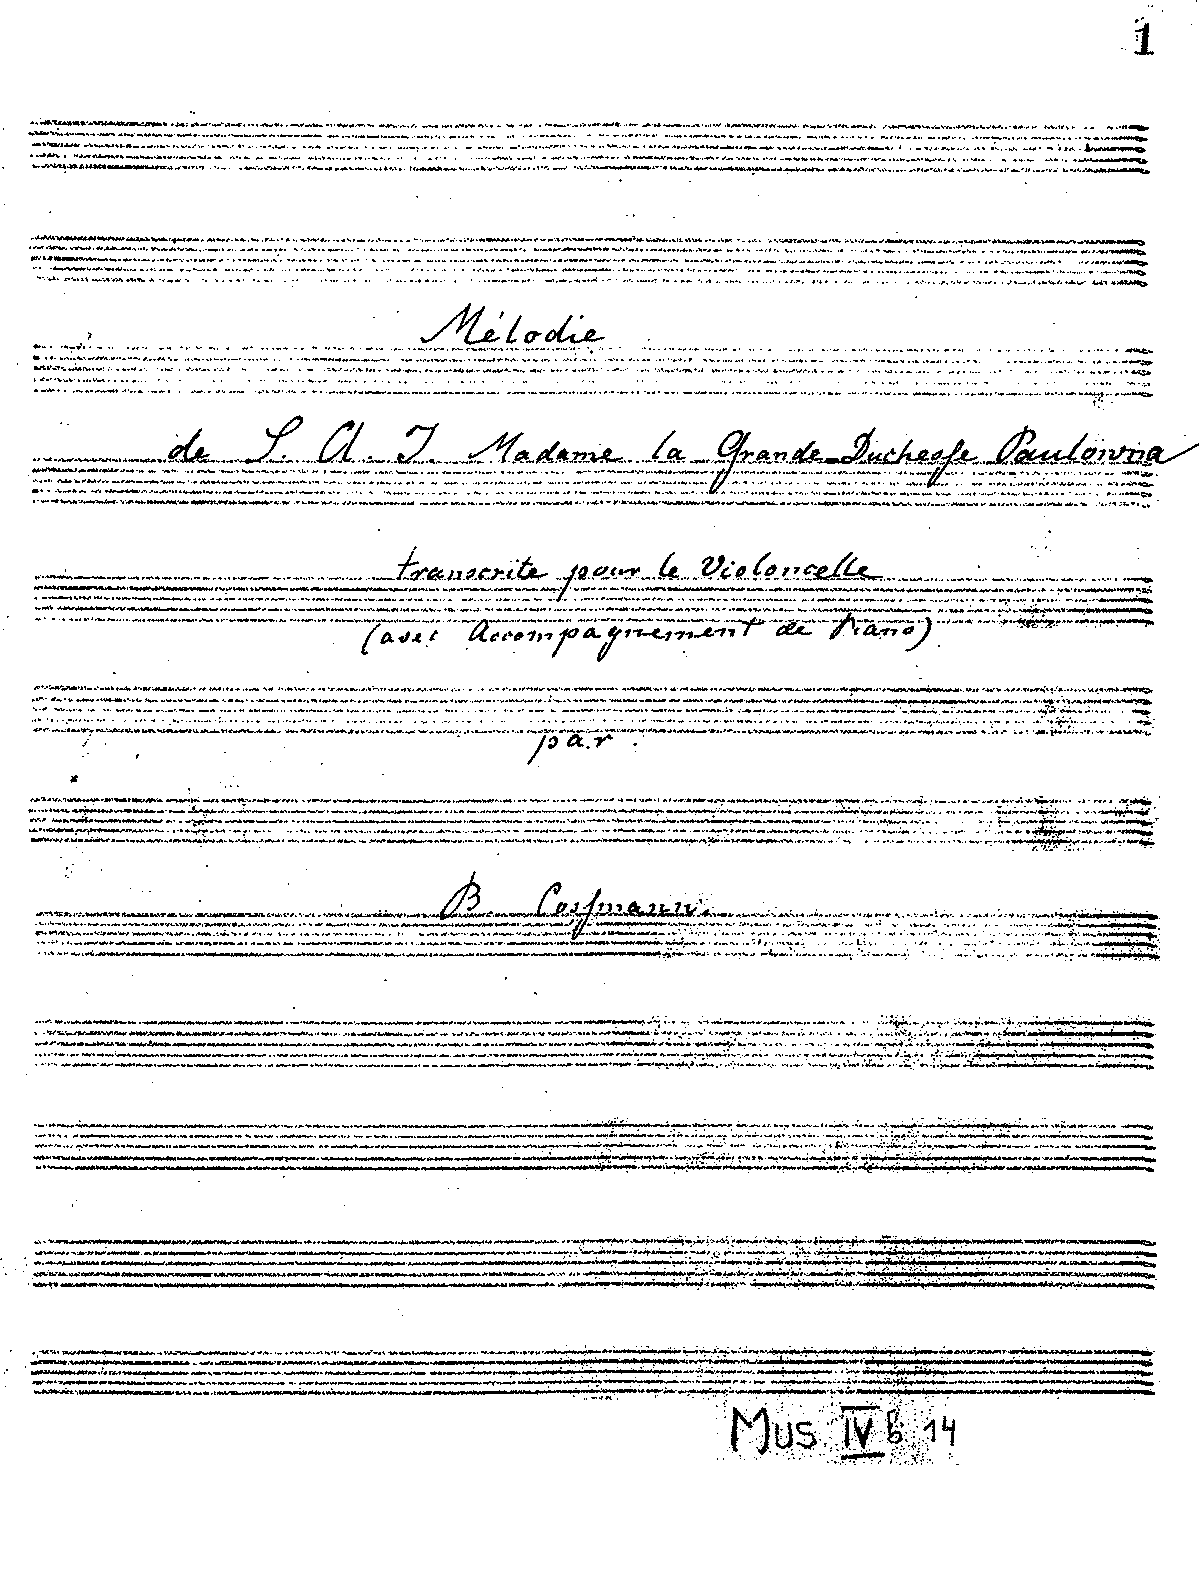 PMLP123855-Cossmann - Melodie of S A I Madame la Grande Duchesse Paulowna for Cello and Piano Manusc.pdf